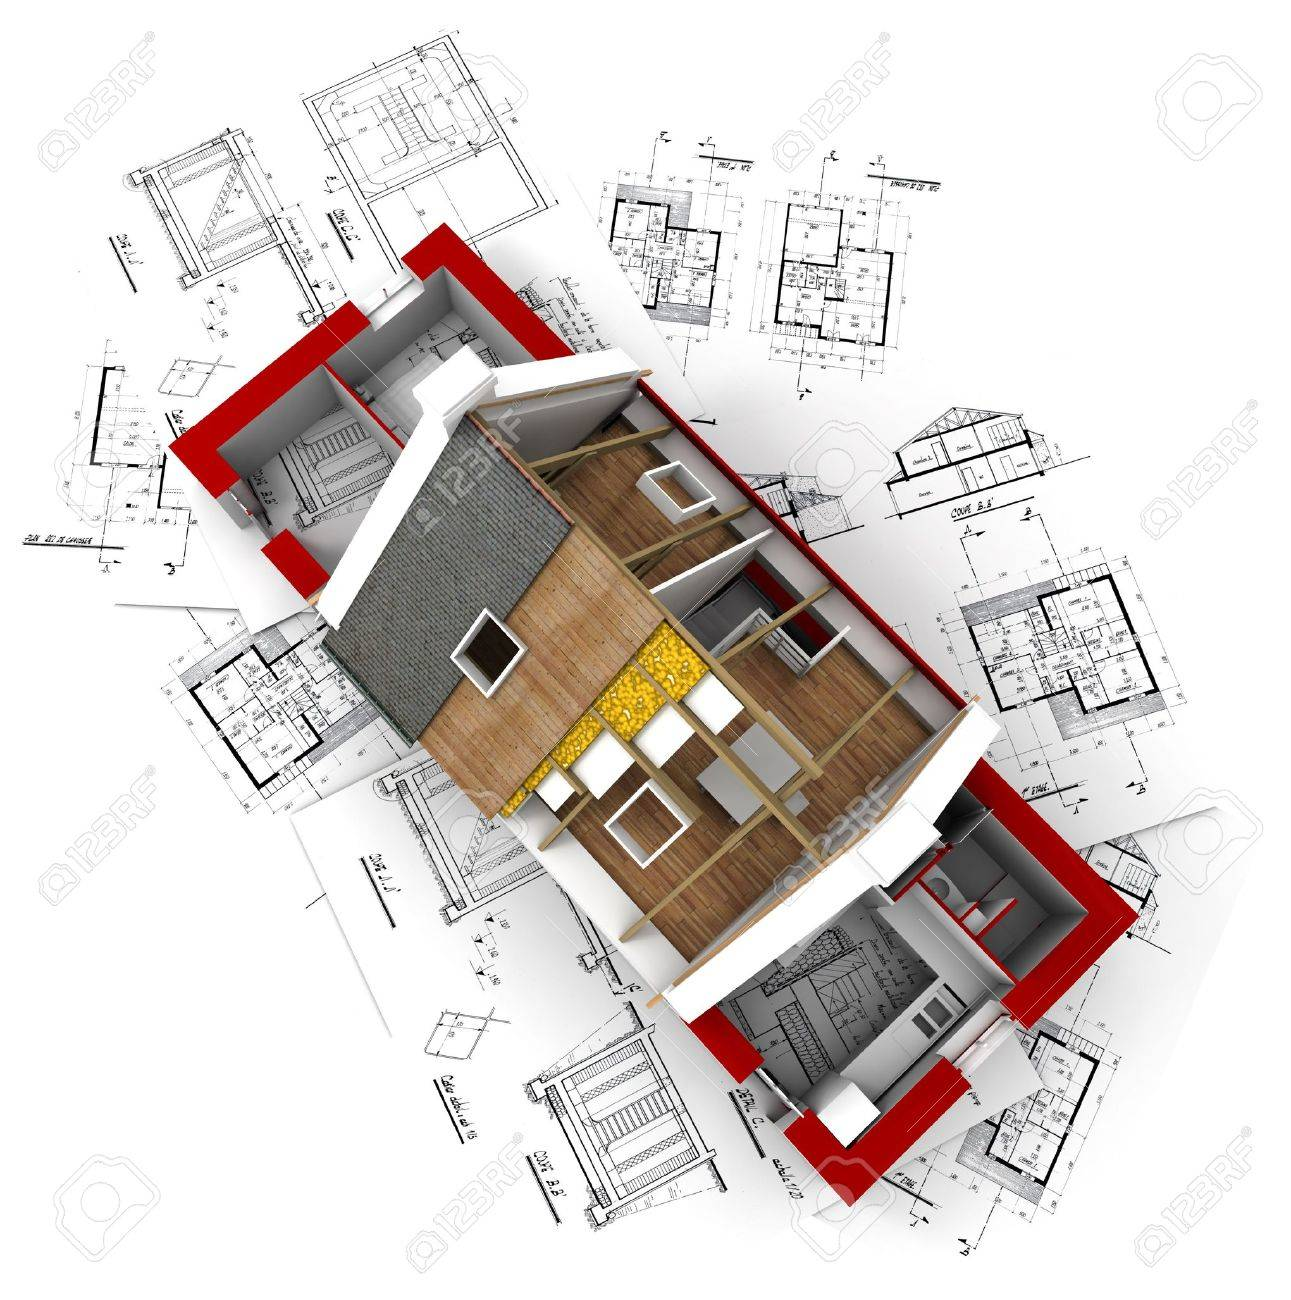 3D Rendering Of A Roofless House On Top Of Architect Plans Stock Photo    2472722